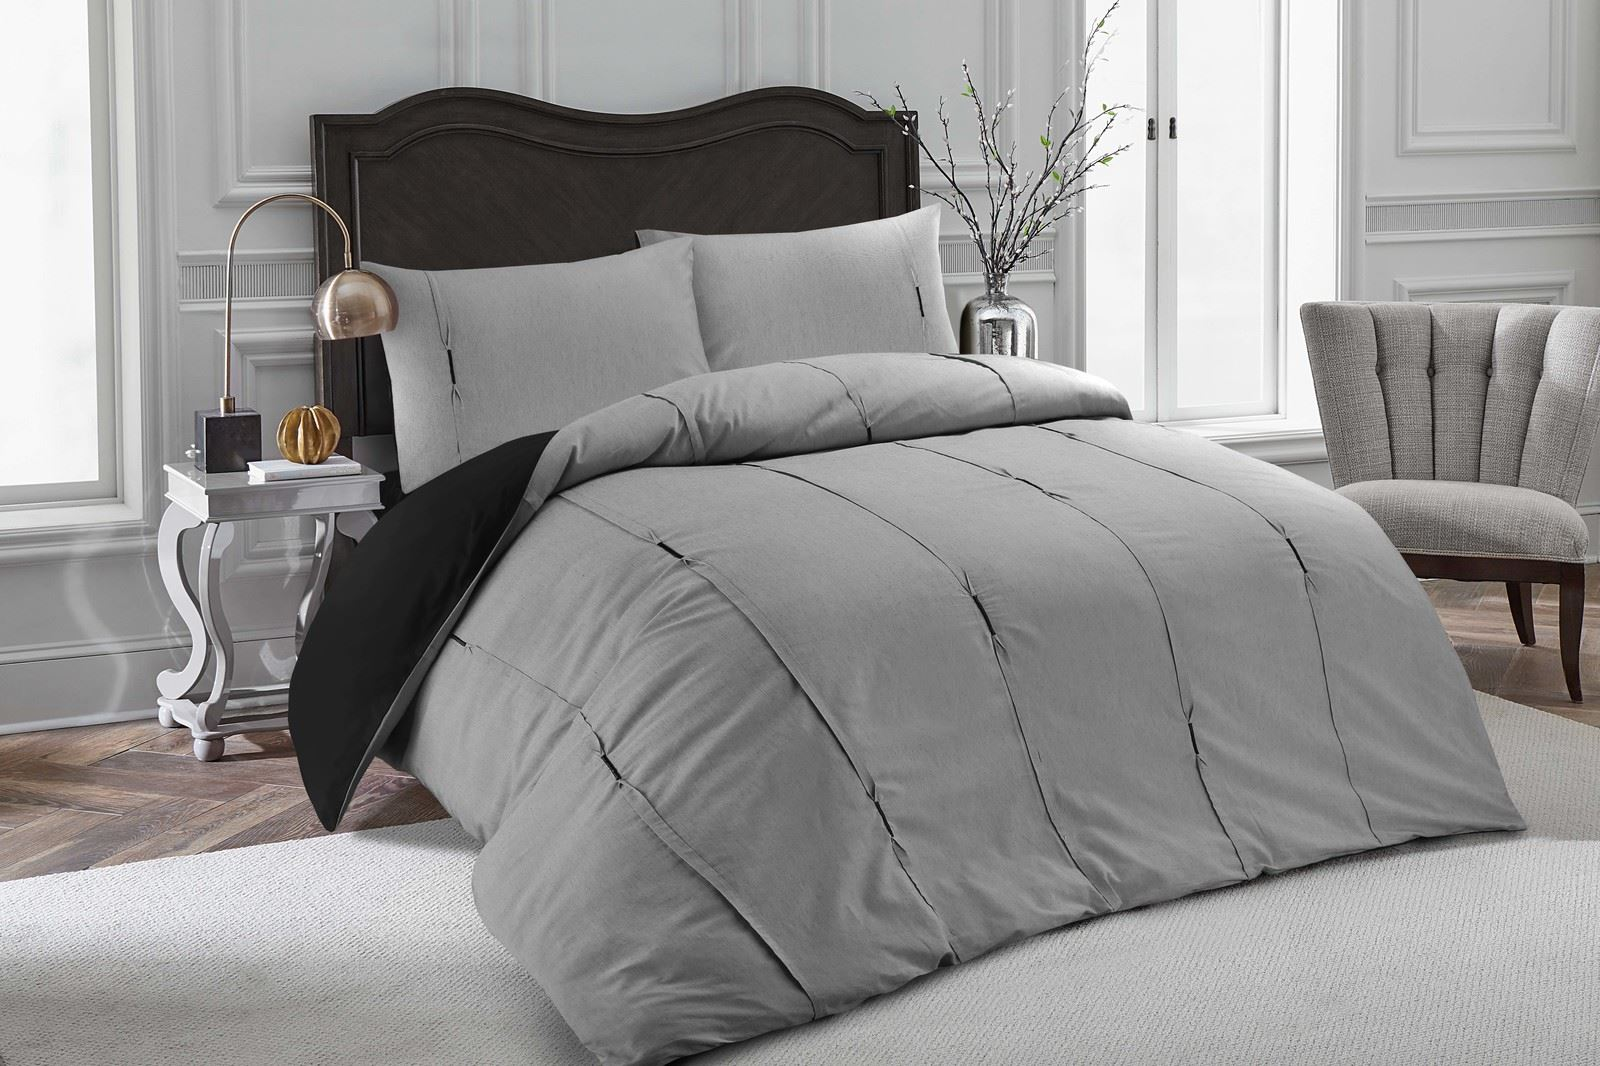 Luxury-Embellished-Duvet-Cover-Set-Single-Double-Super-King-Size-Bedding-Grey thumbnail 11